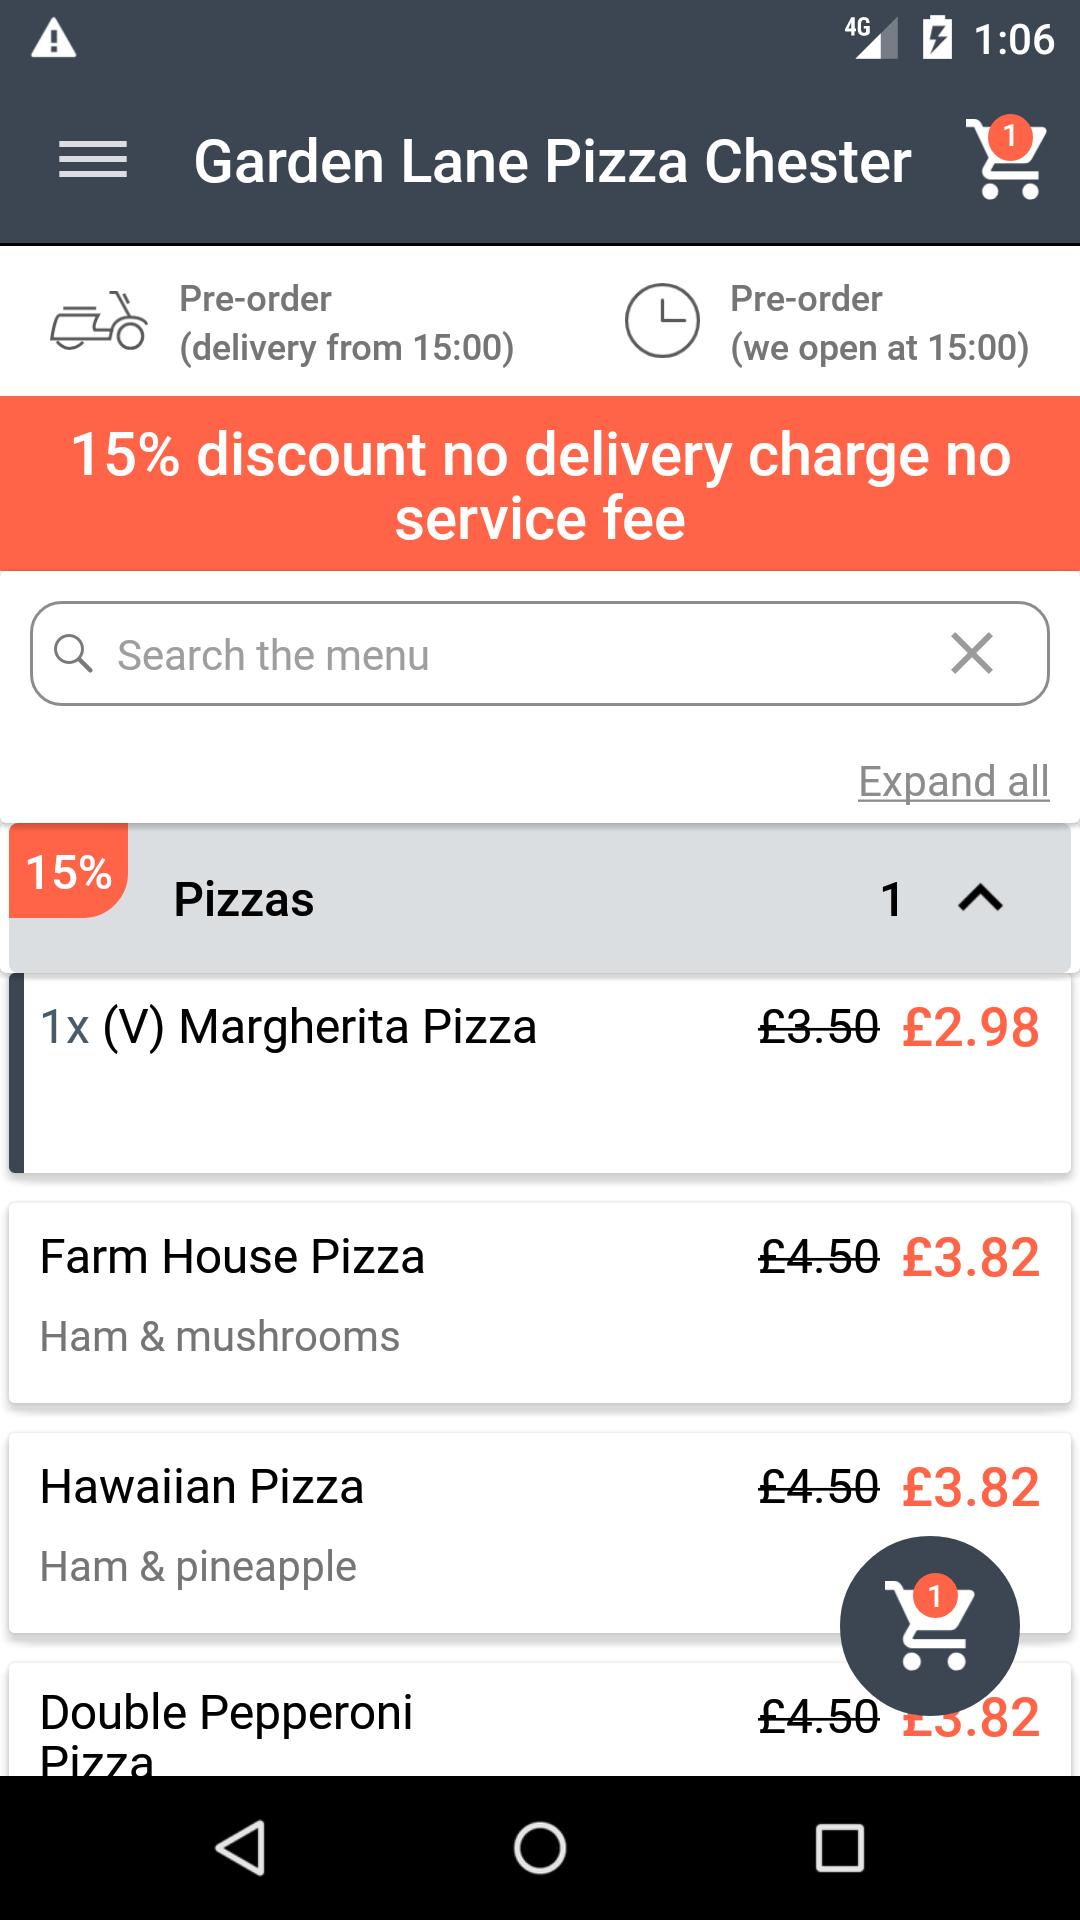 Garden Lane Pizza Chester For Android Apk Download